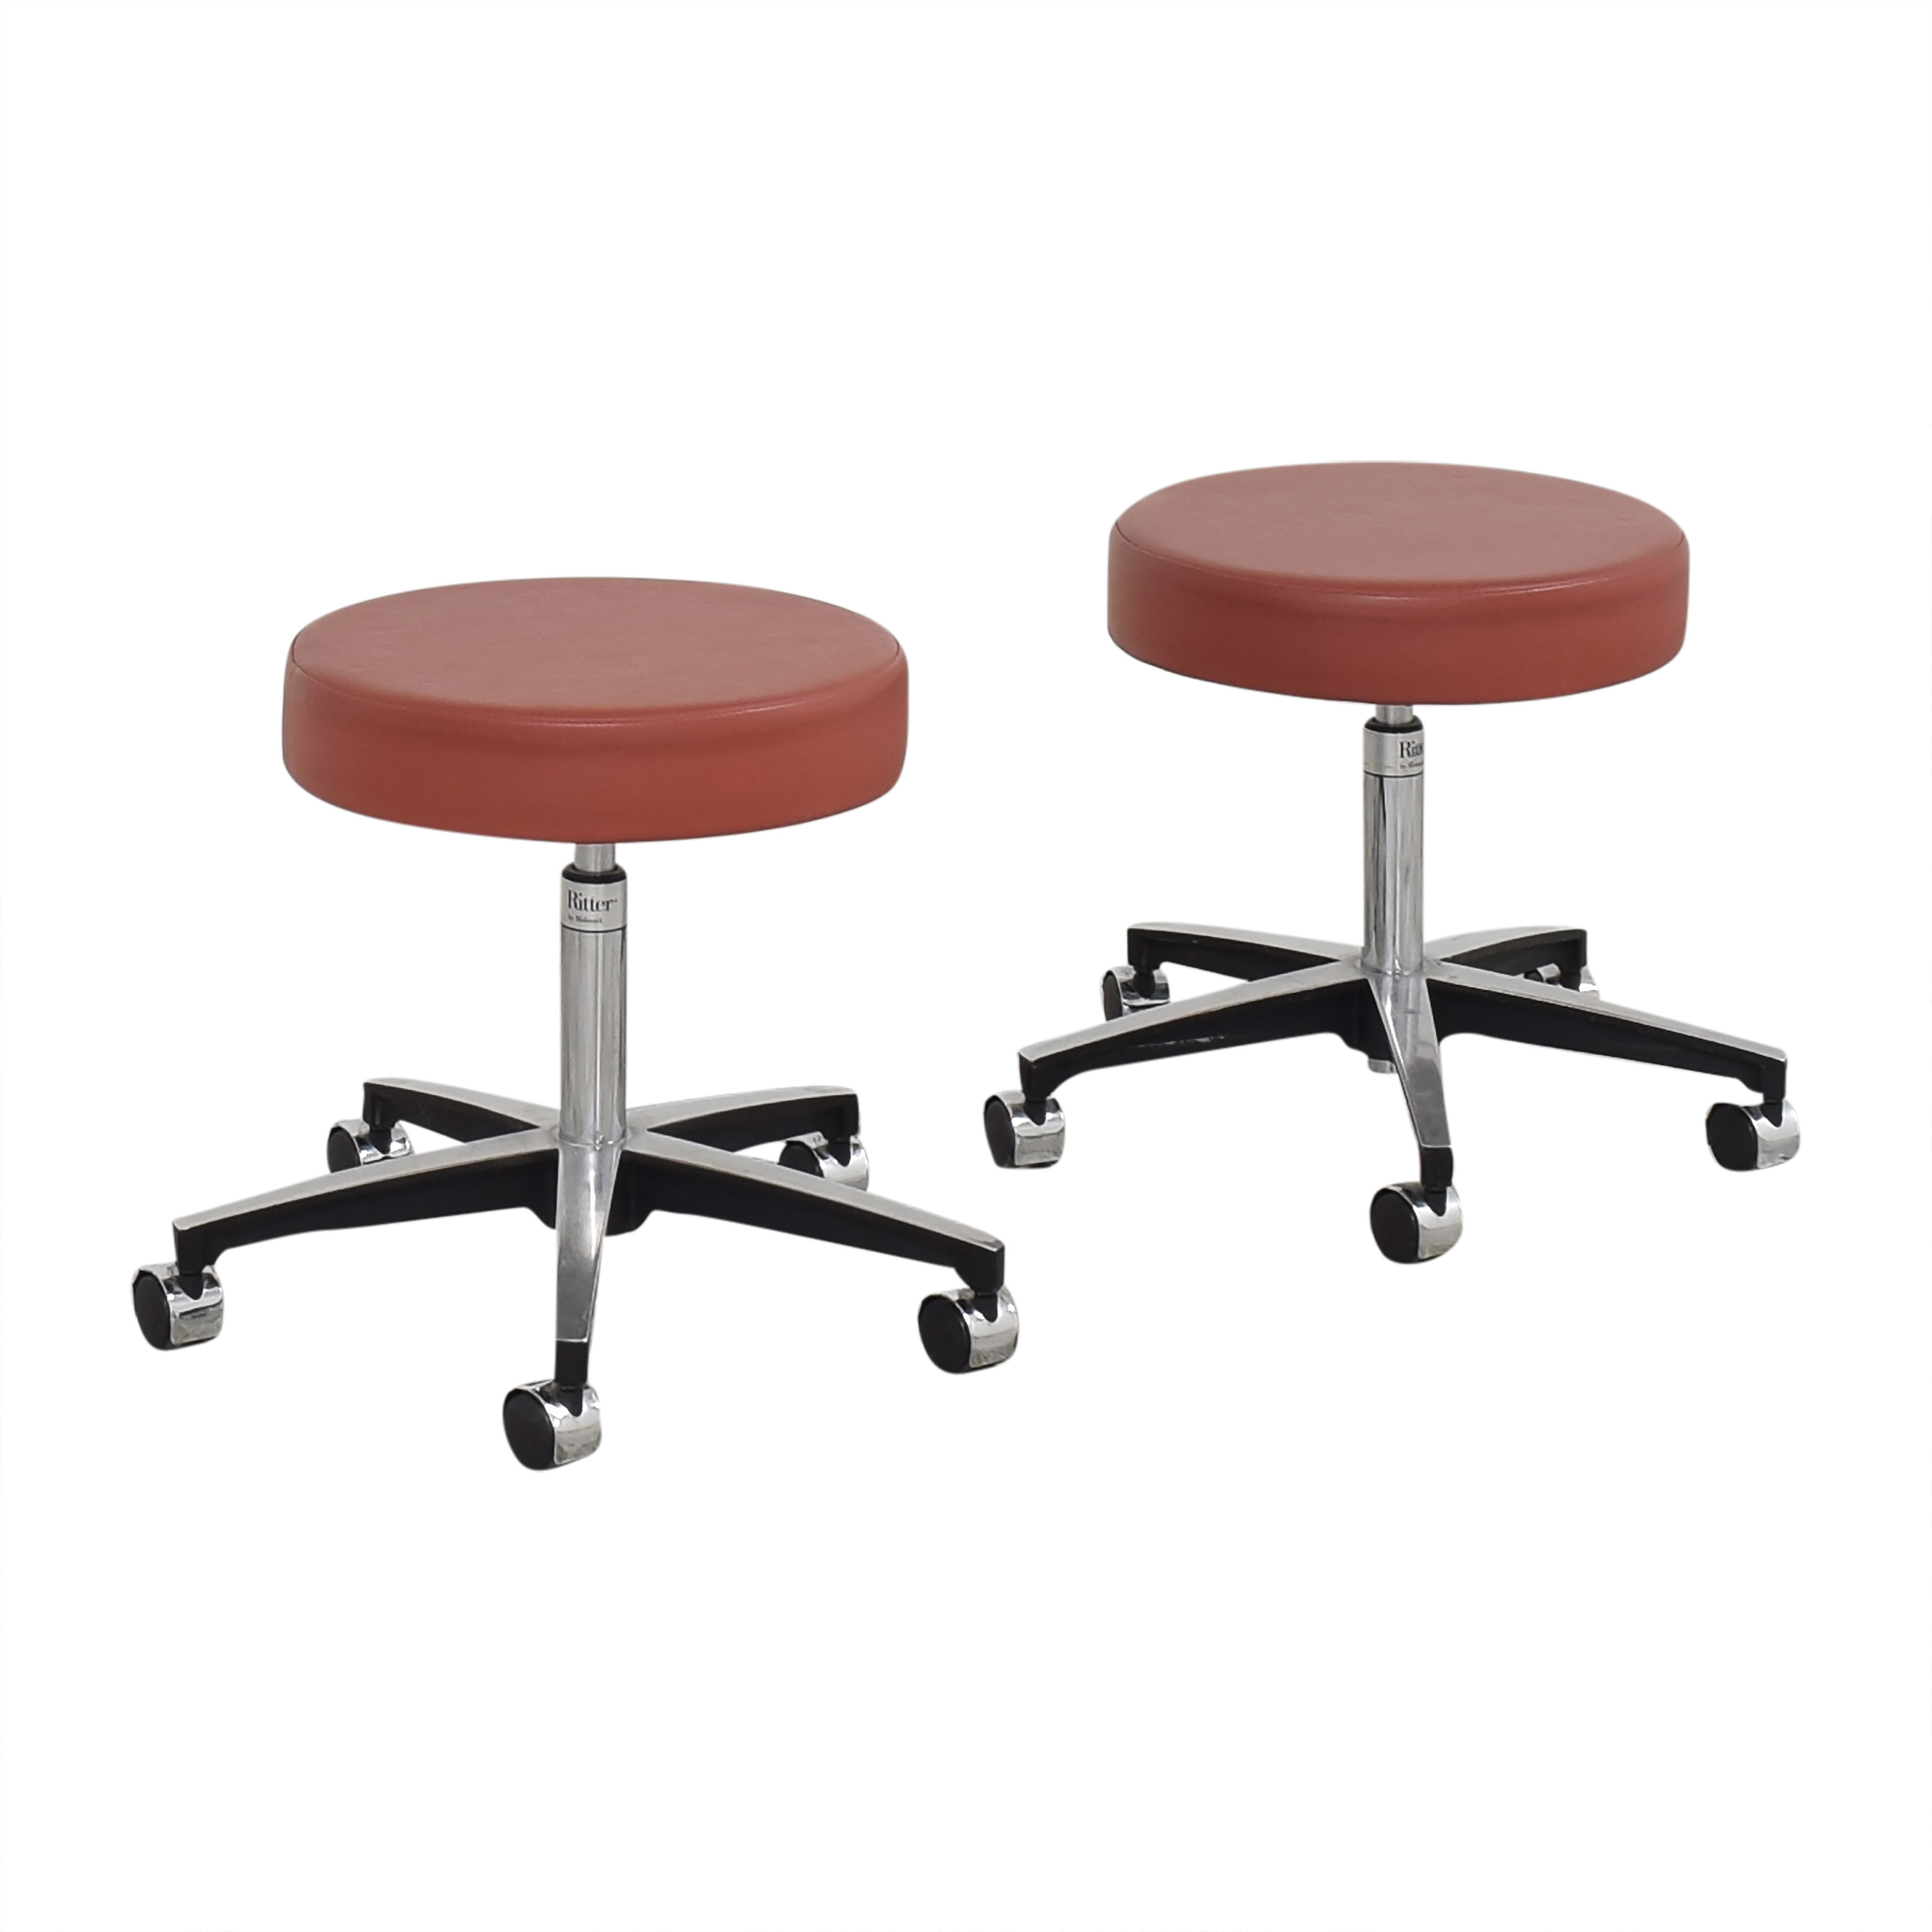 Ritter Ritter by Midmark 276 Air Lift Stools used